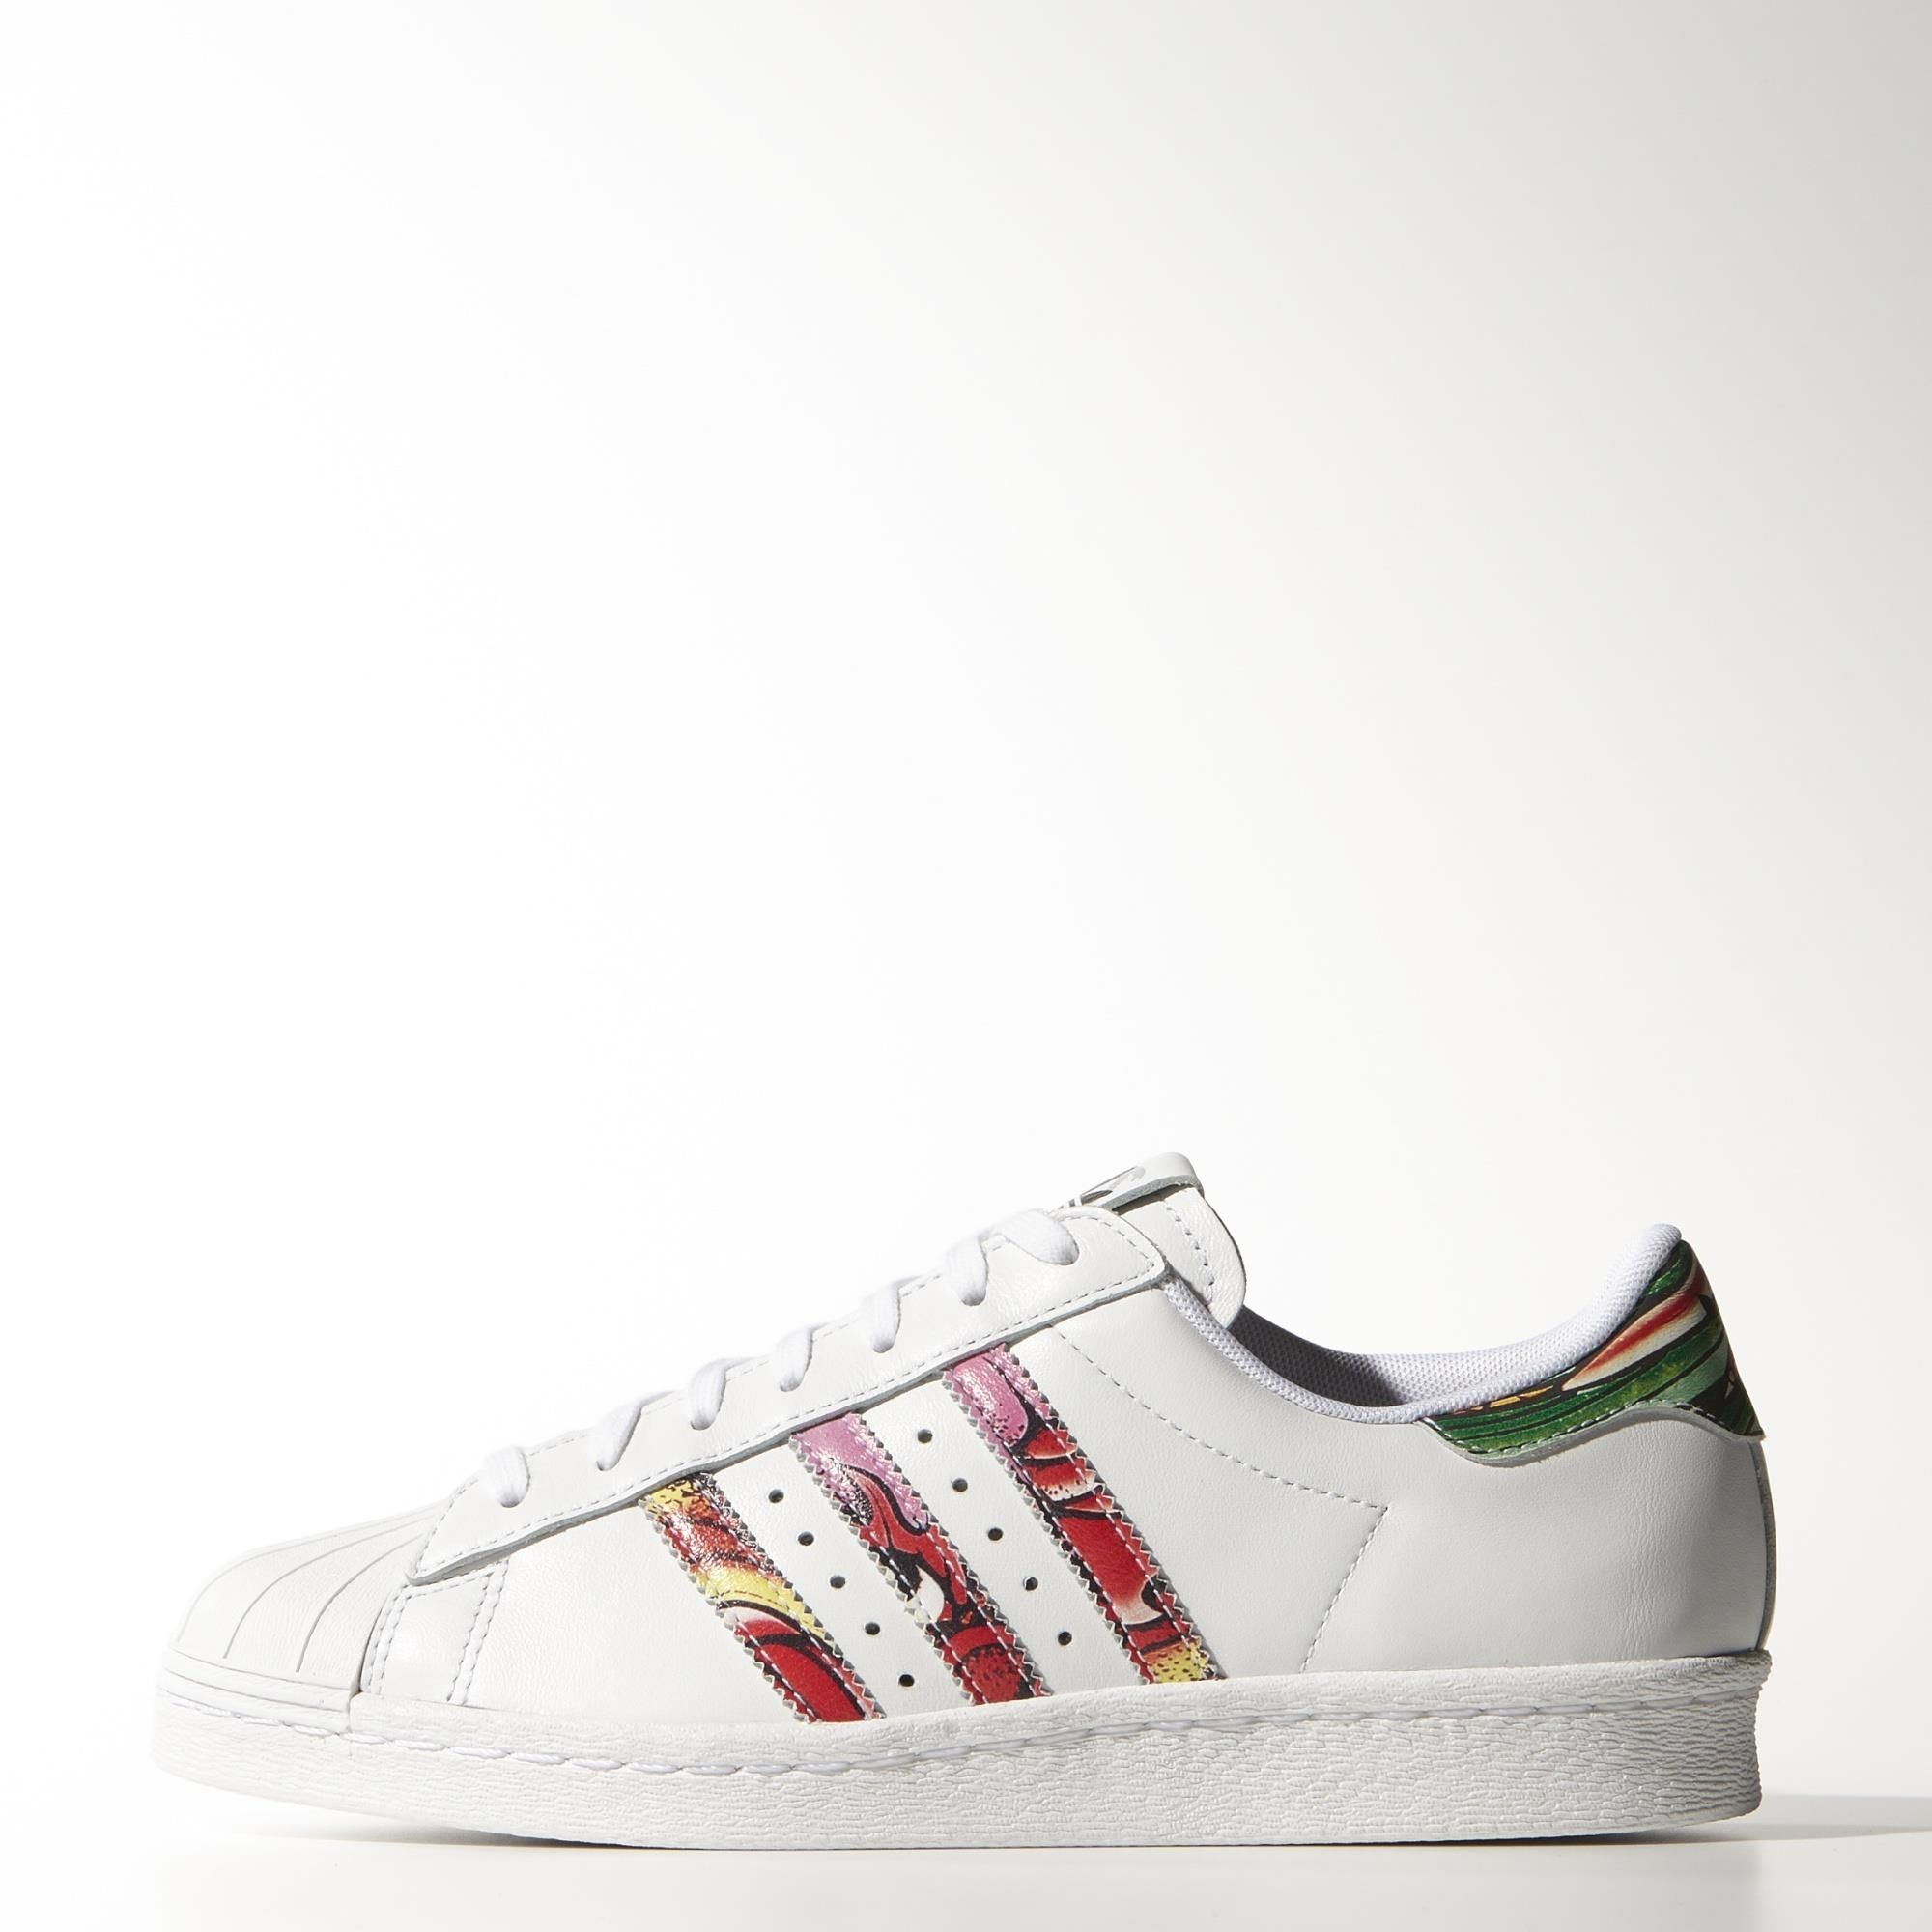 Adidas Superstar Rayas Colores